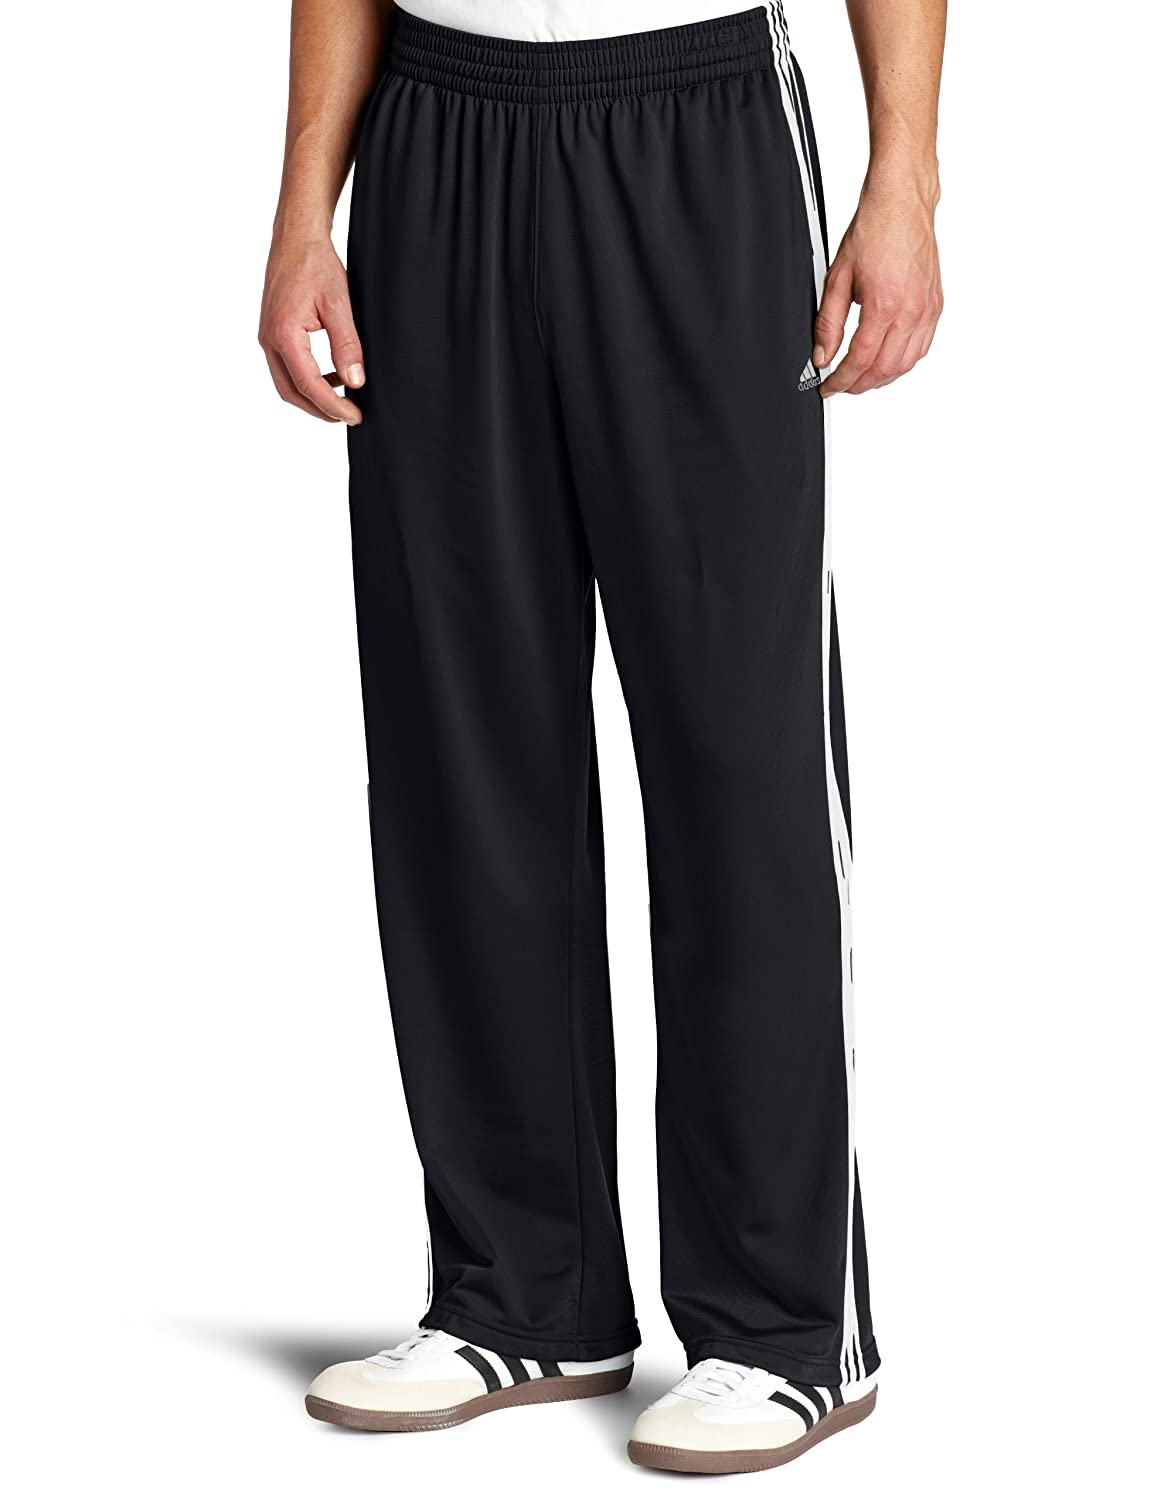 947e2ea33 Amazon.com: adidas Men's 3 Stripe Pant: Clothing